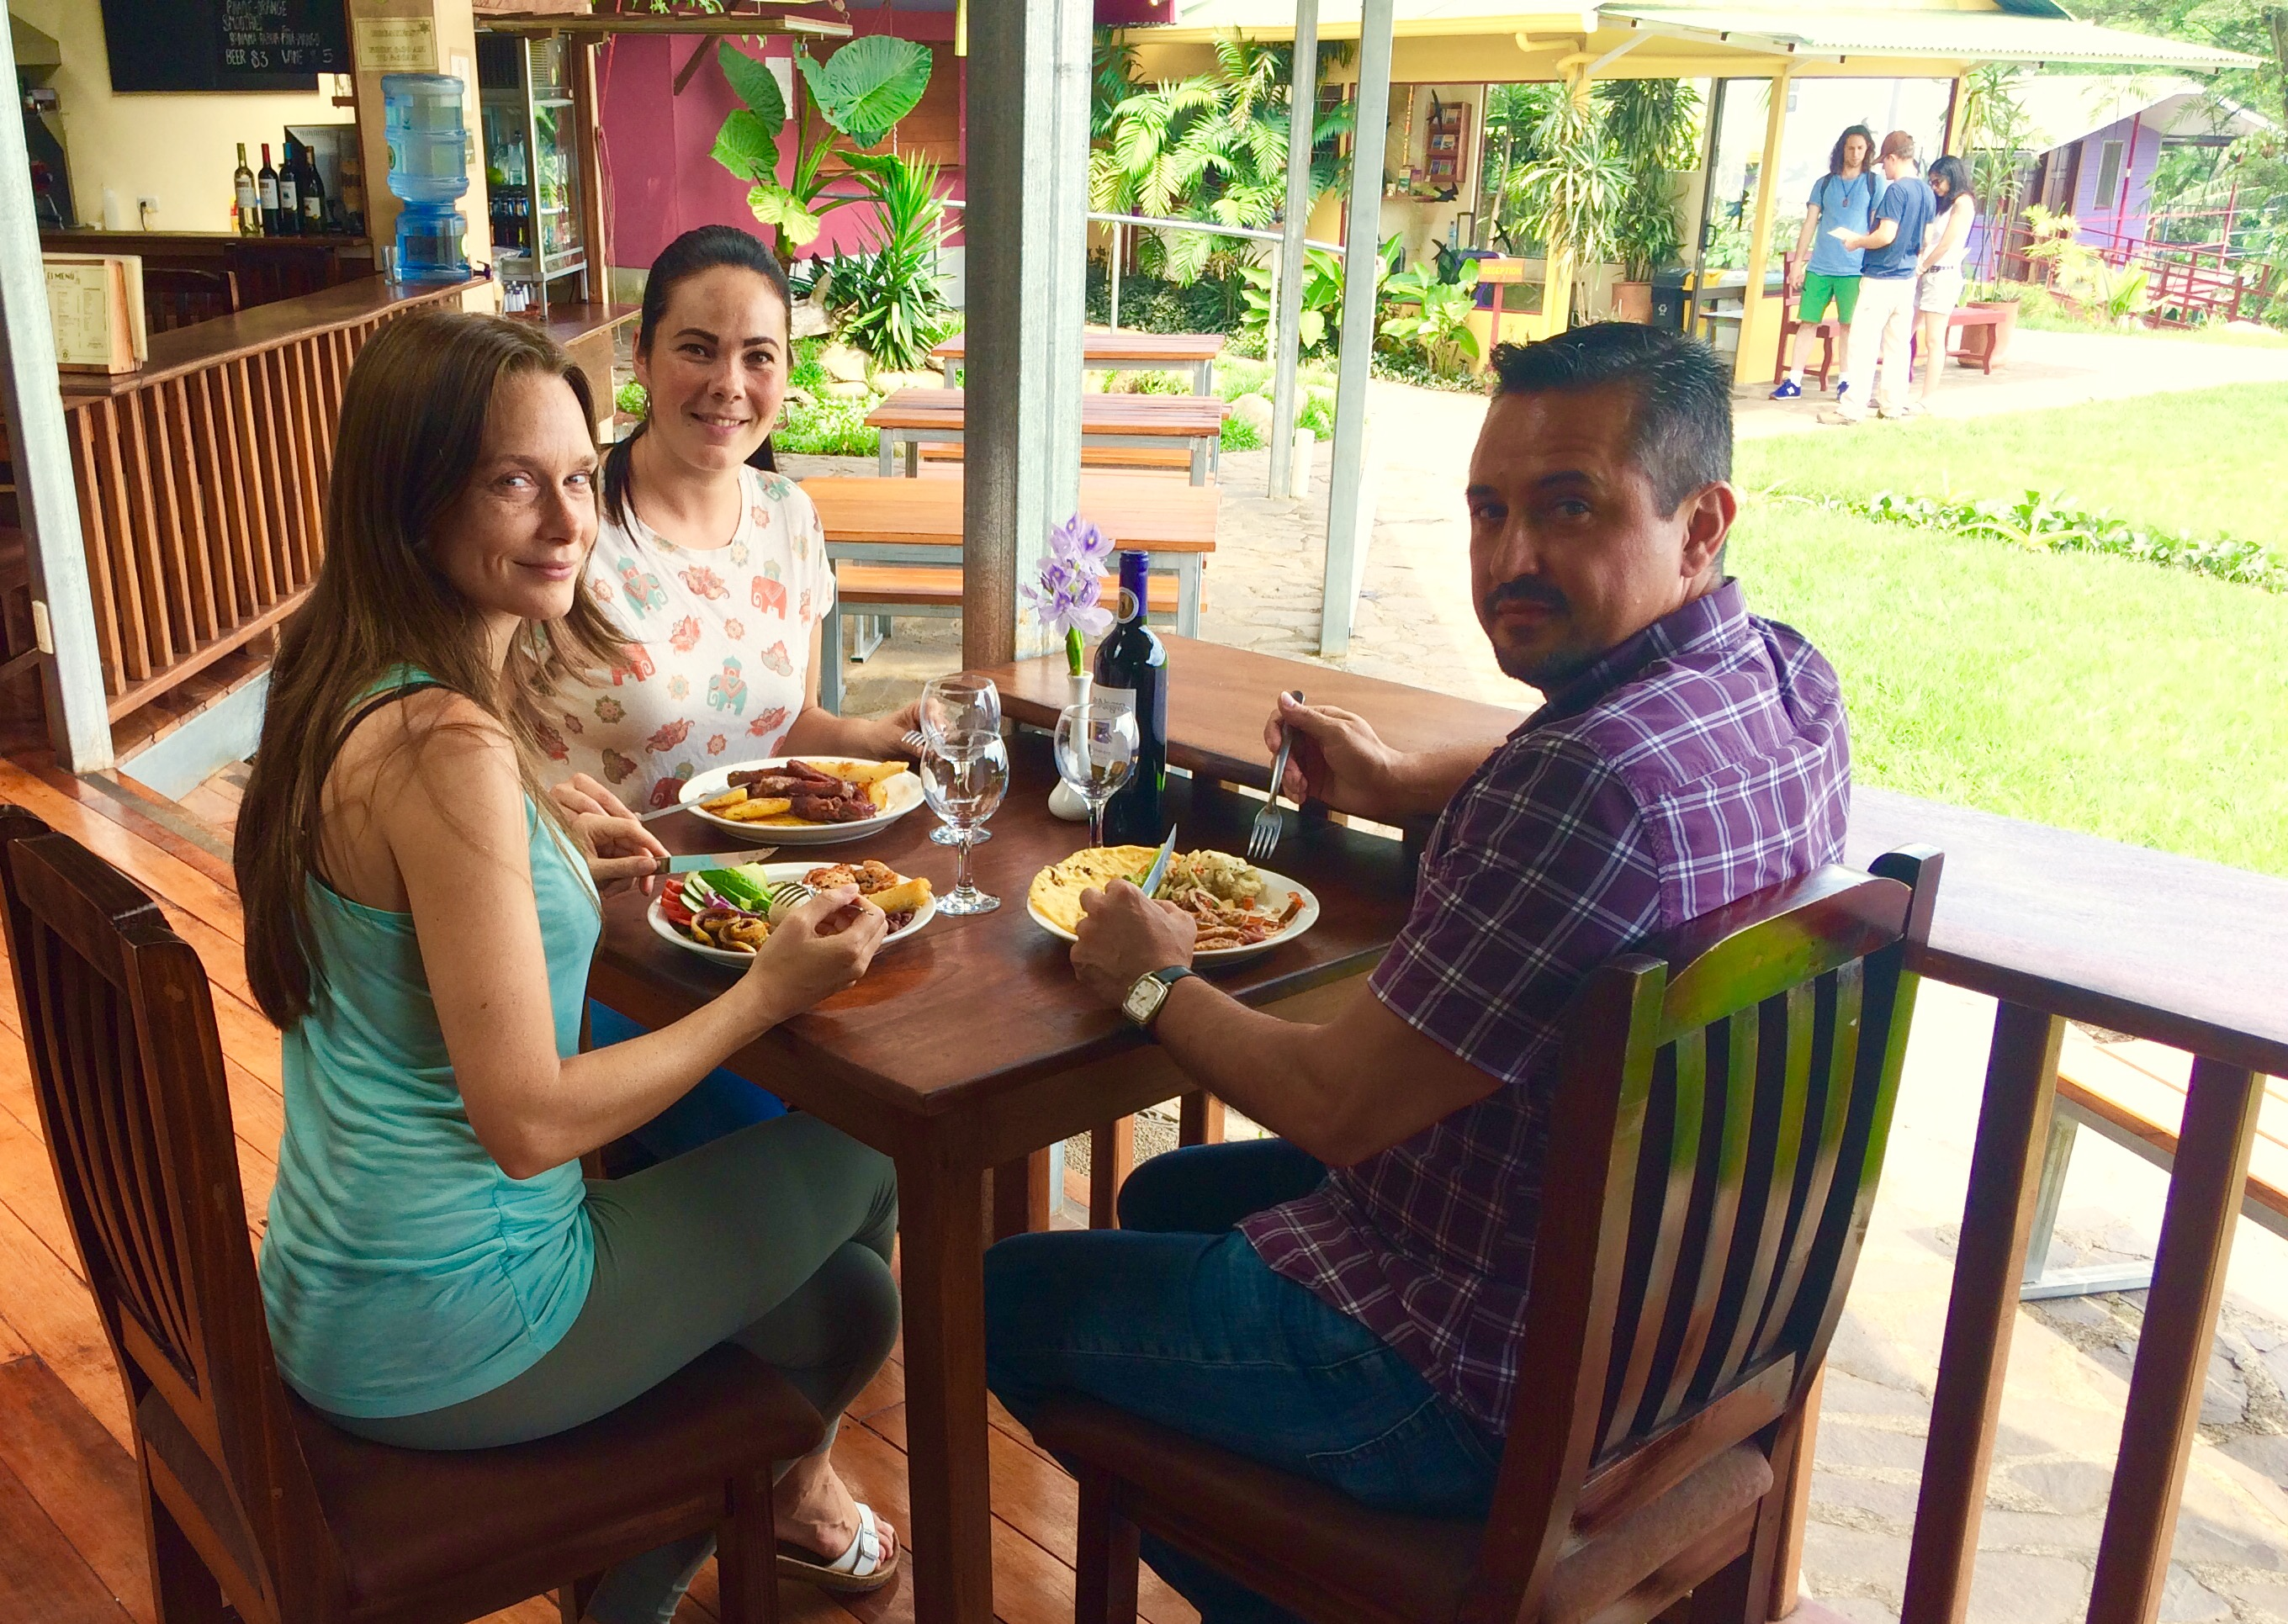 Family meal in Monteverde